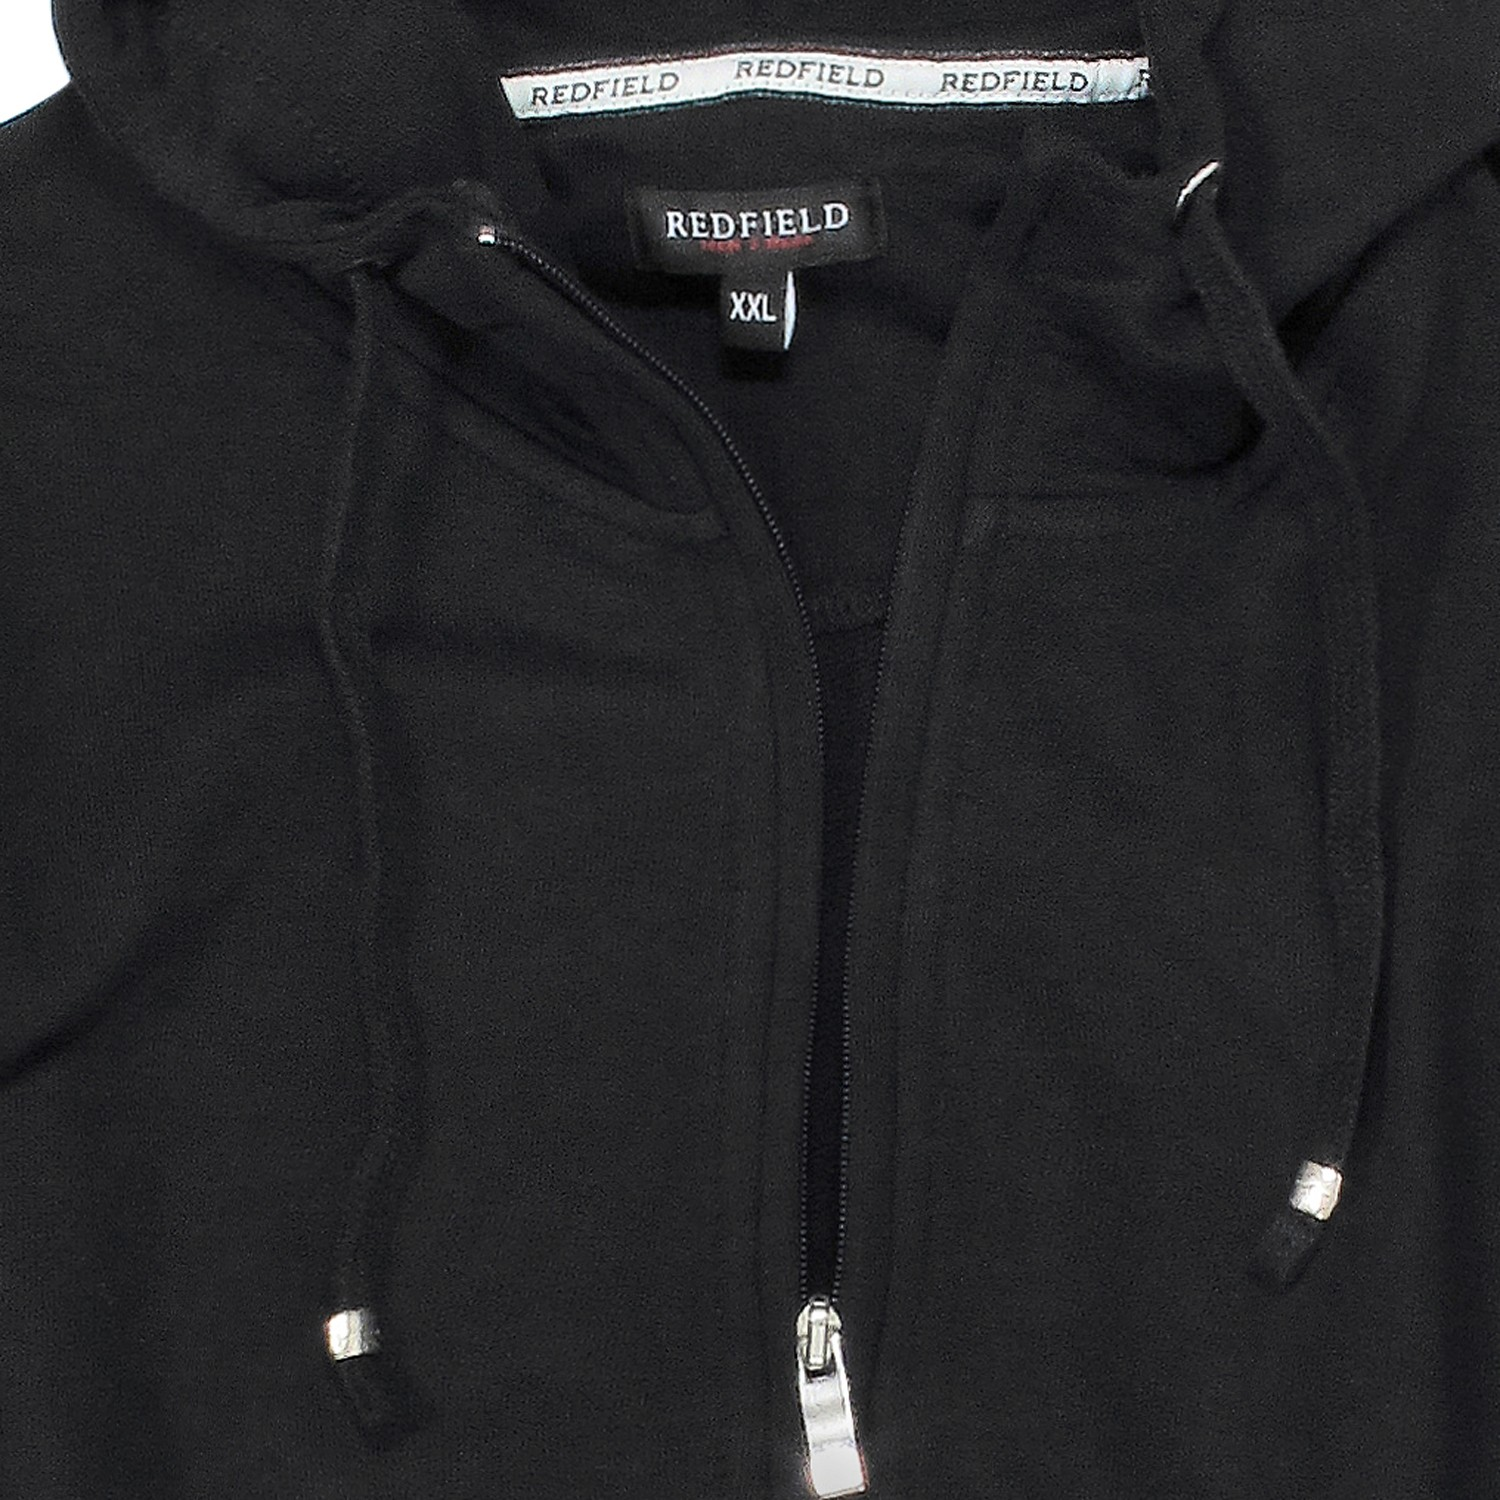 Detail Image to Sweat jacket in black by Redfield up to oversize 10XL